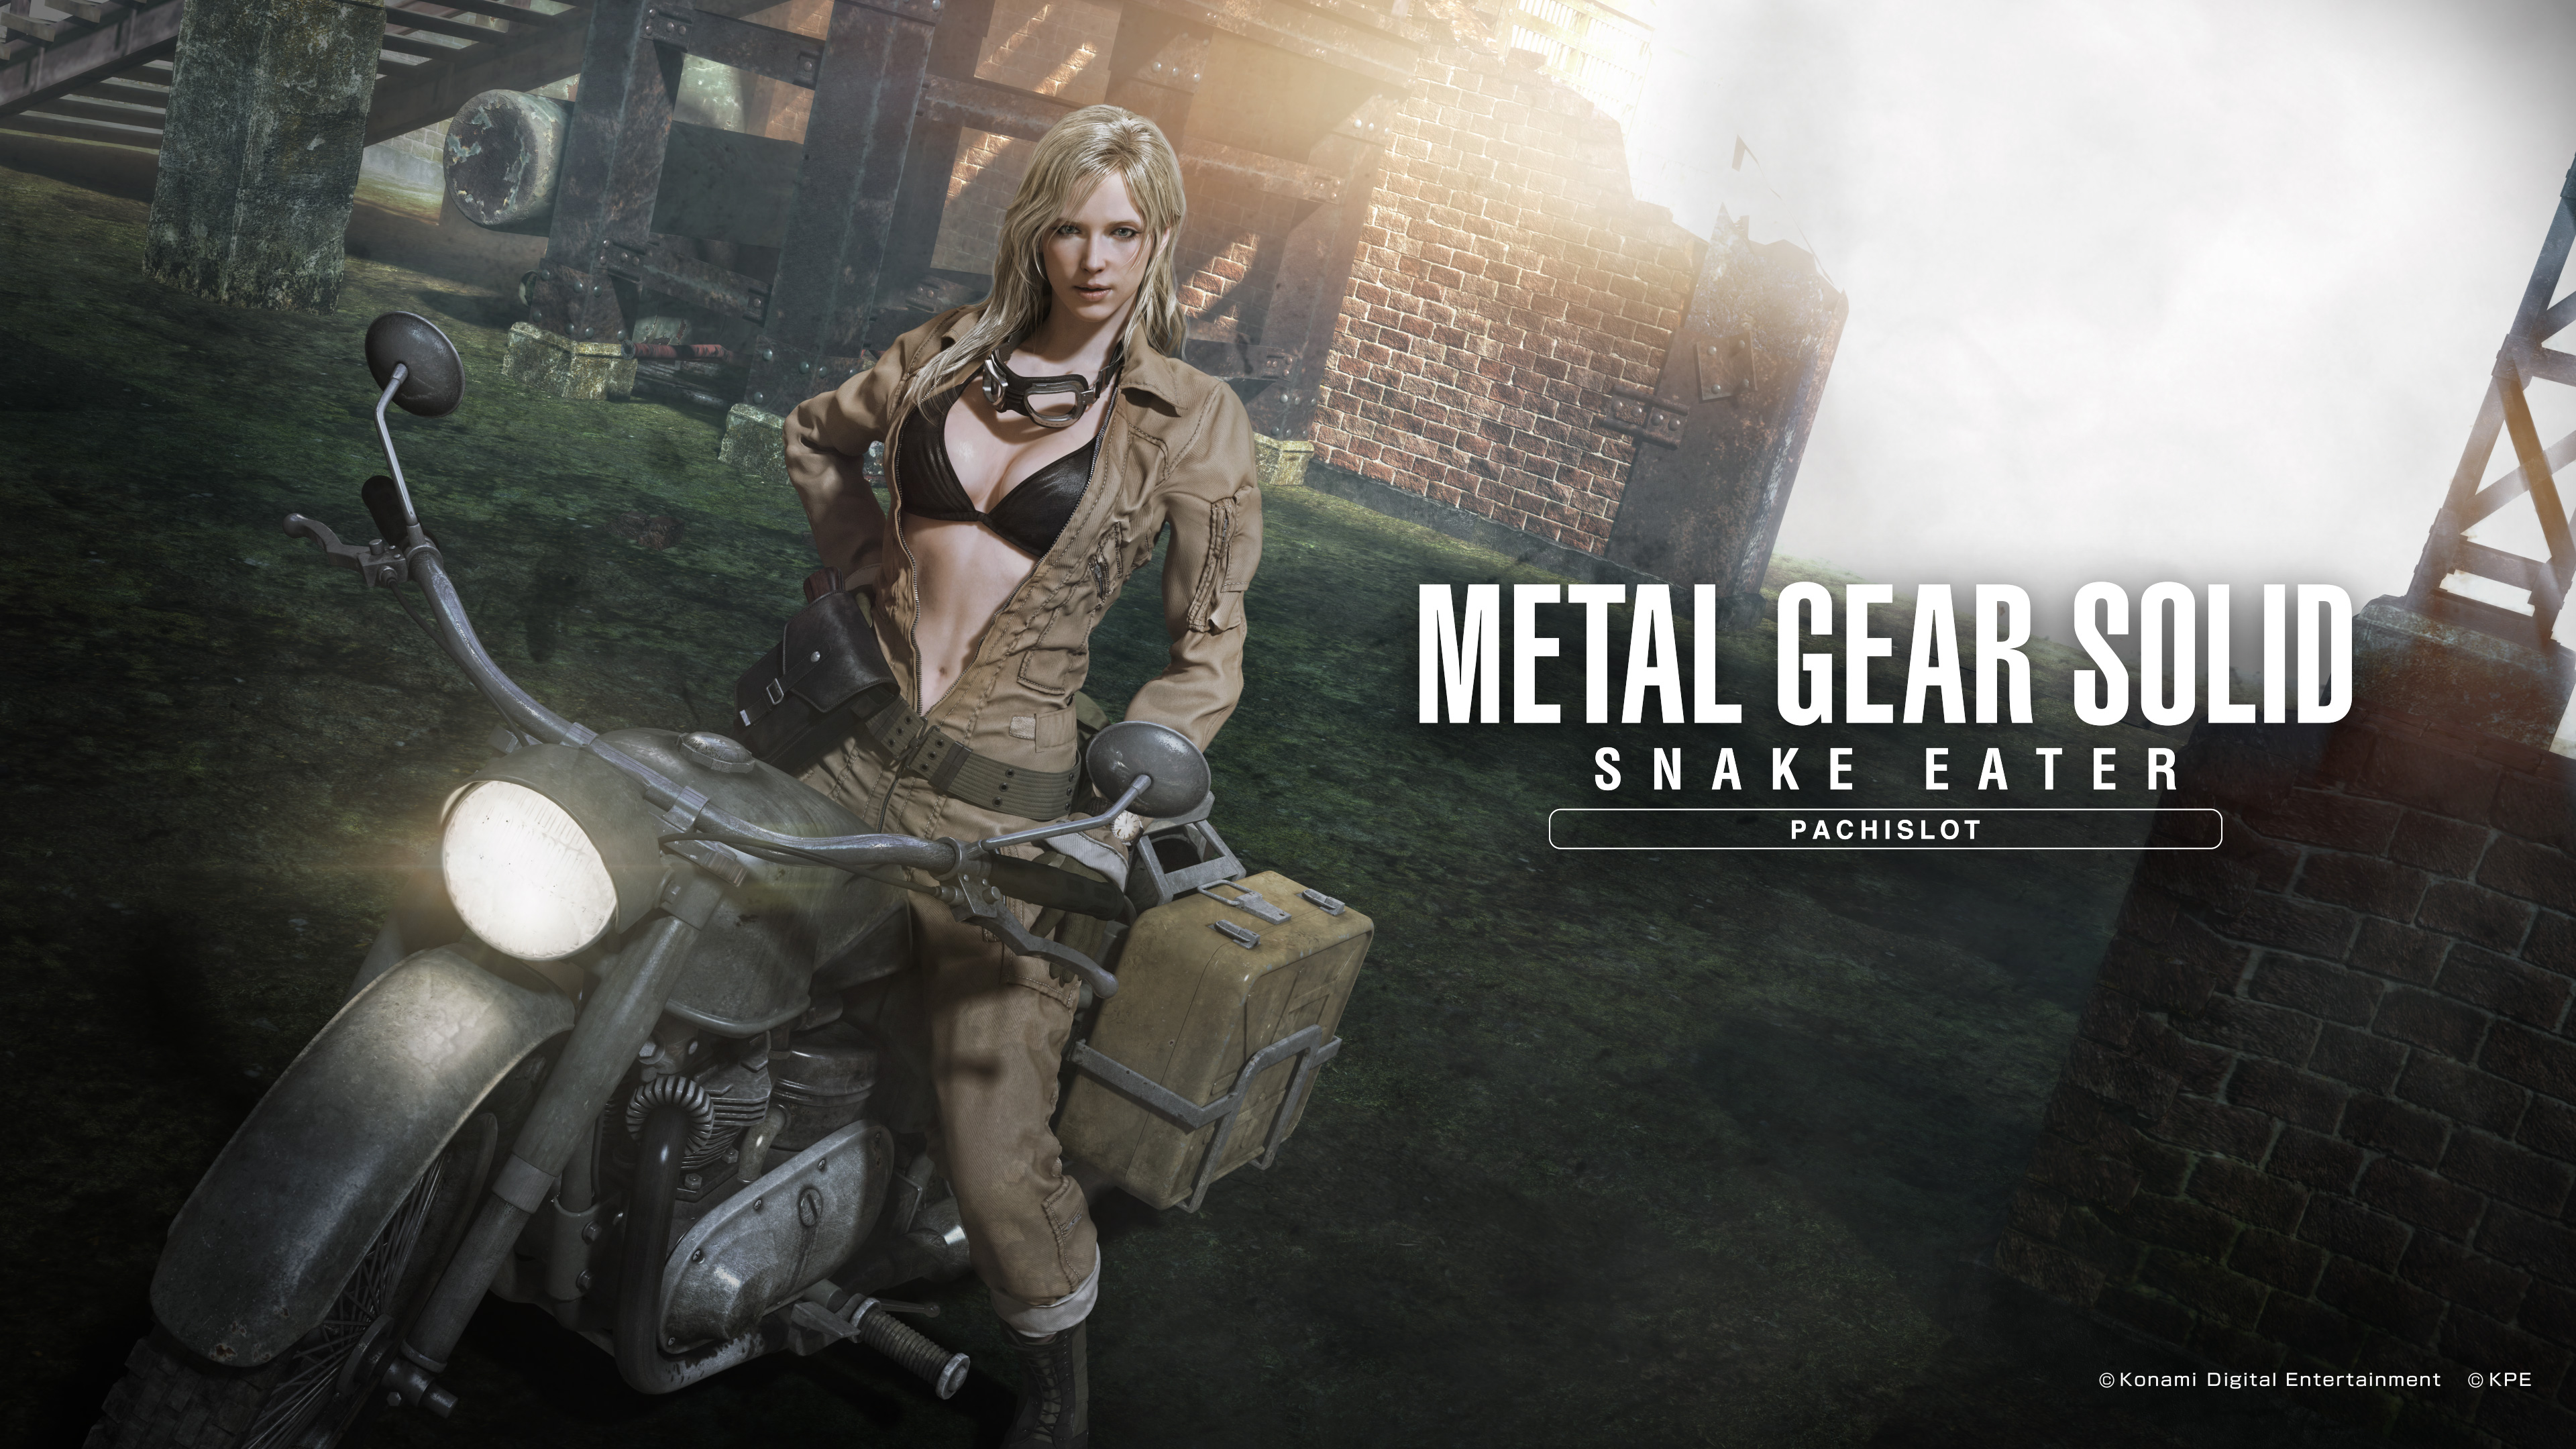 MGS Snake Eater Pachislot Wallpaper PC 4